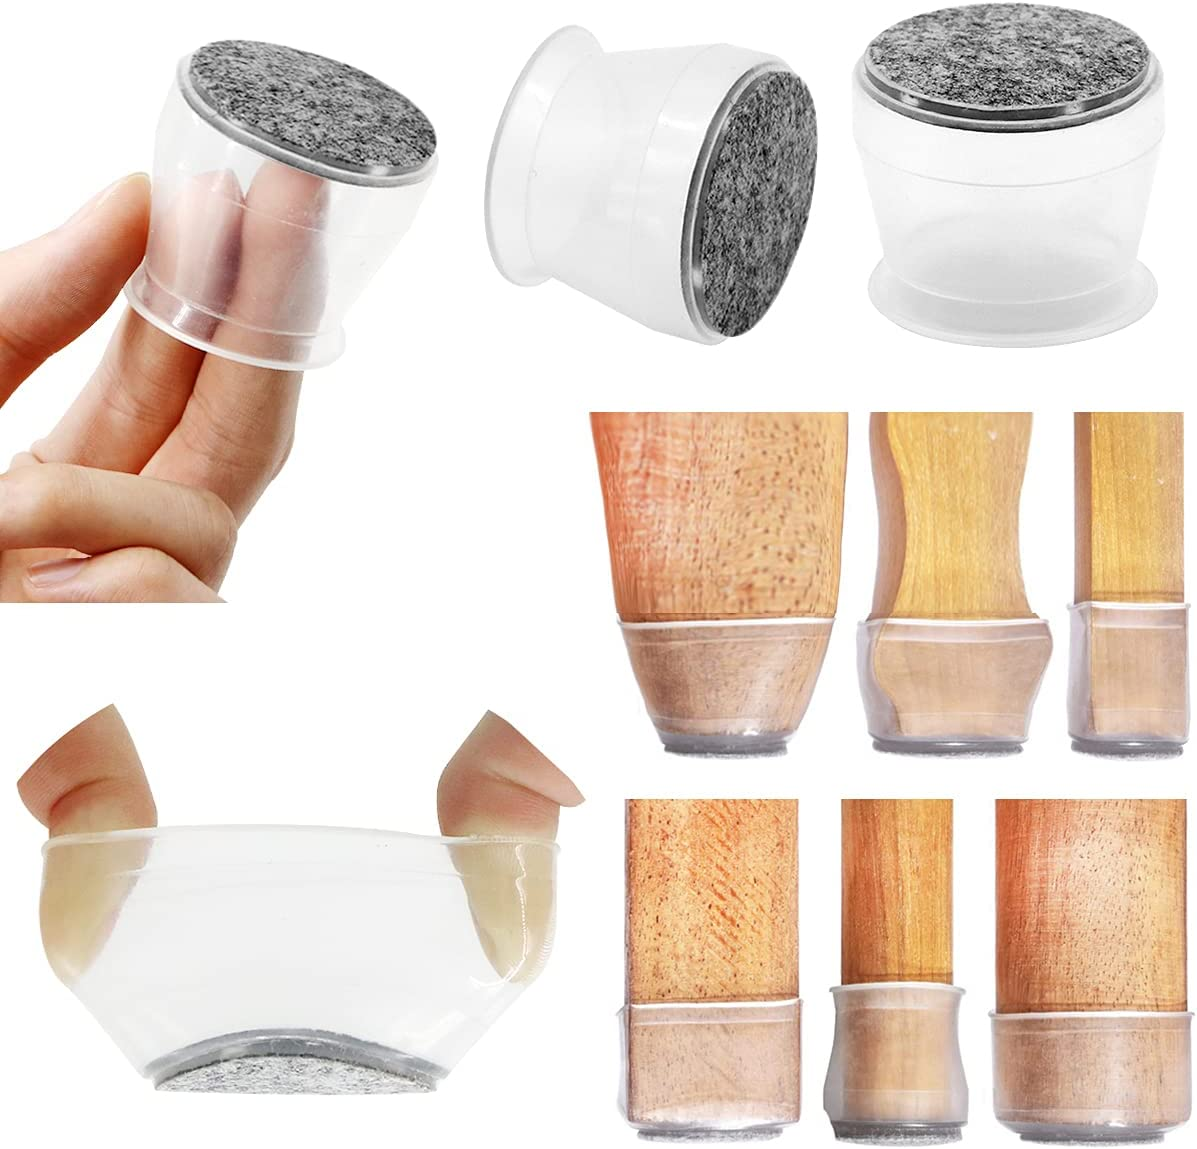 24PCS/Chair Leg Floor Protectors,Silicone Furniture Feet Protector Pads,Table feet Covers,Stool Leg Protection Caps,Furniture Cup with Felt Pads.Protect Hardwood & Laminate Flooring